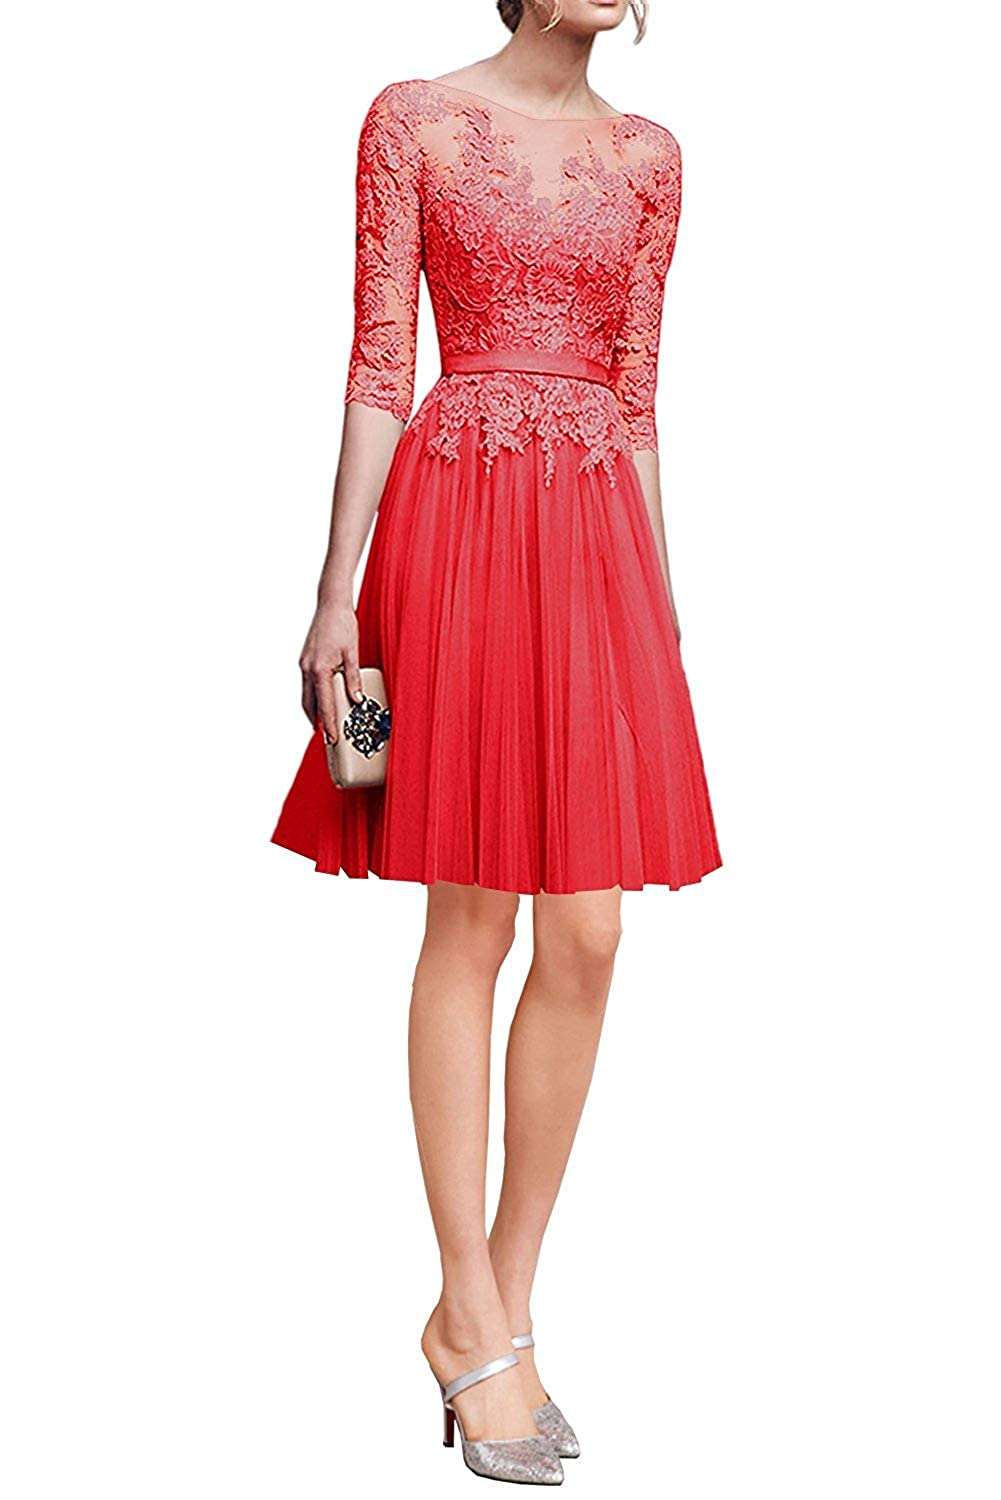 Red ZLQQ Woman's Half Sleeves Tulle Short Bridesmaid Dresses Lace Tea Length Evening Gowns